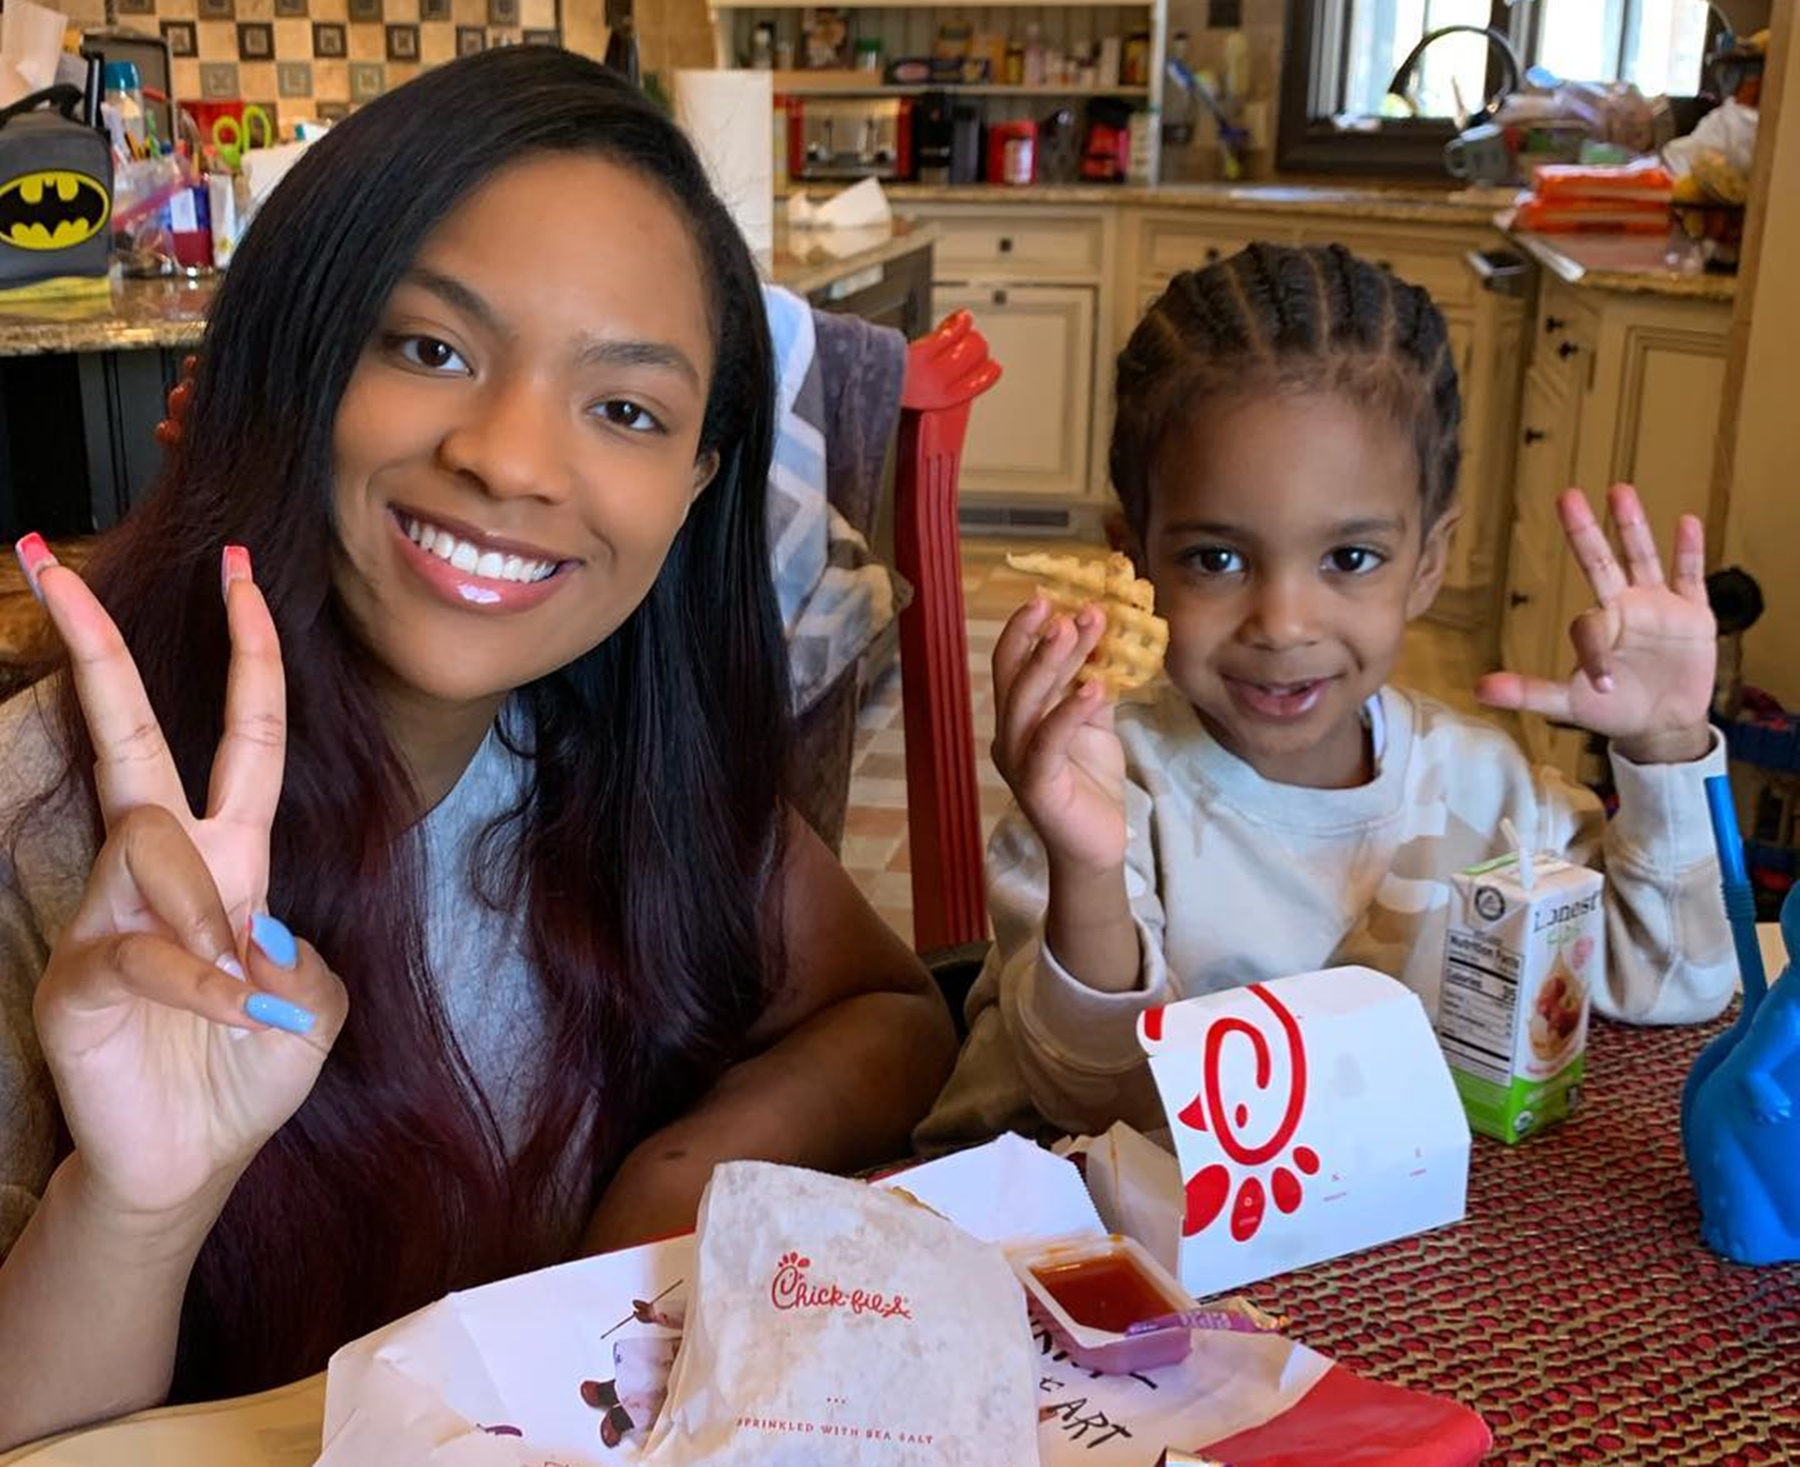 """kandi-burruss-shares-video-of-ace-making-sweet-promises-to-his-mom-and-big-sister-riley-happy-supporters-say-todd-tucker-and-his-wife-raised-these-children-well"""